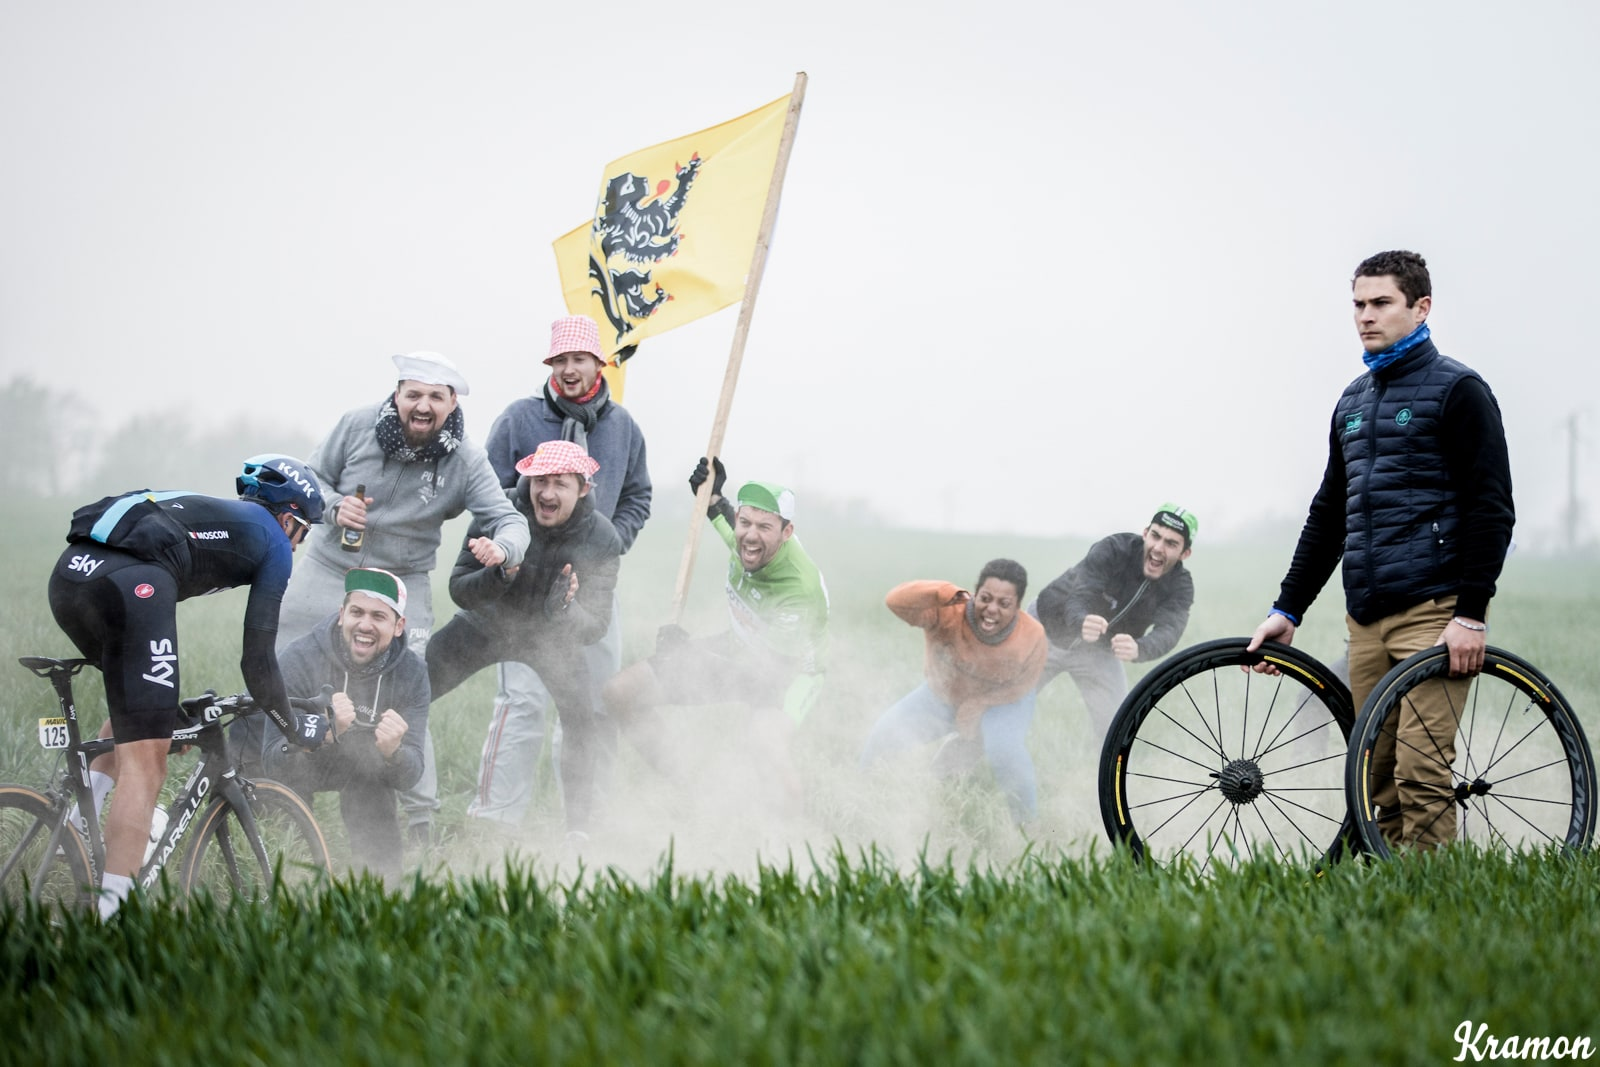 Paris-Roubaix 101: The history and tech of the Hell of the North